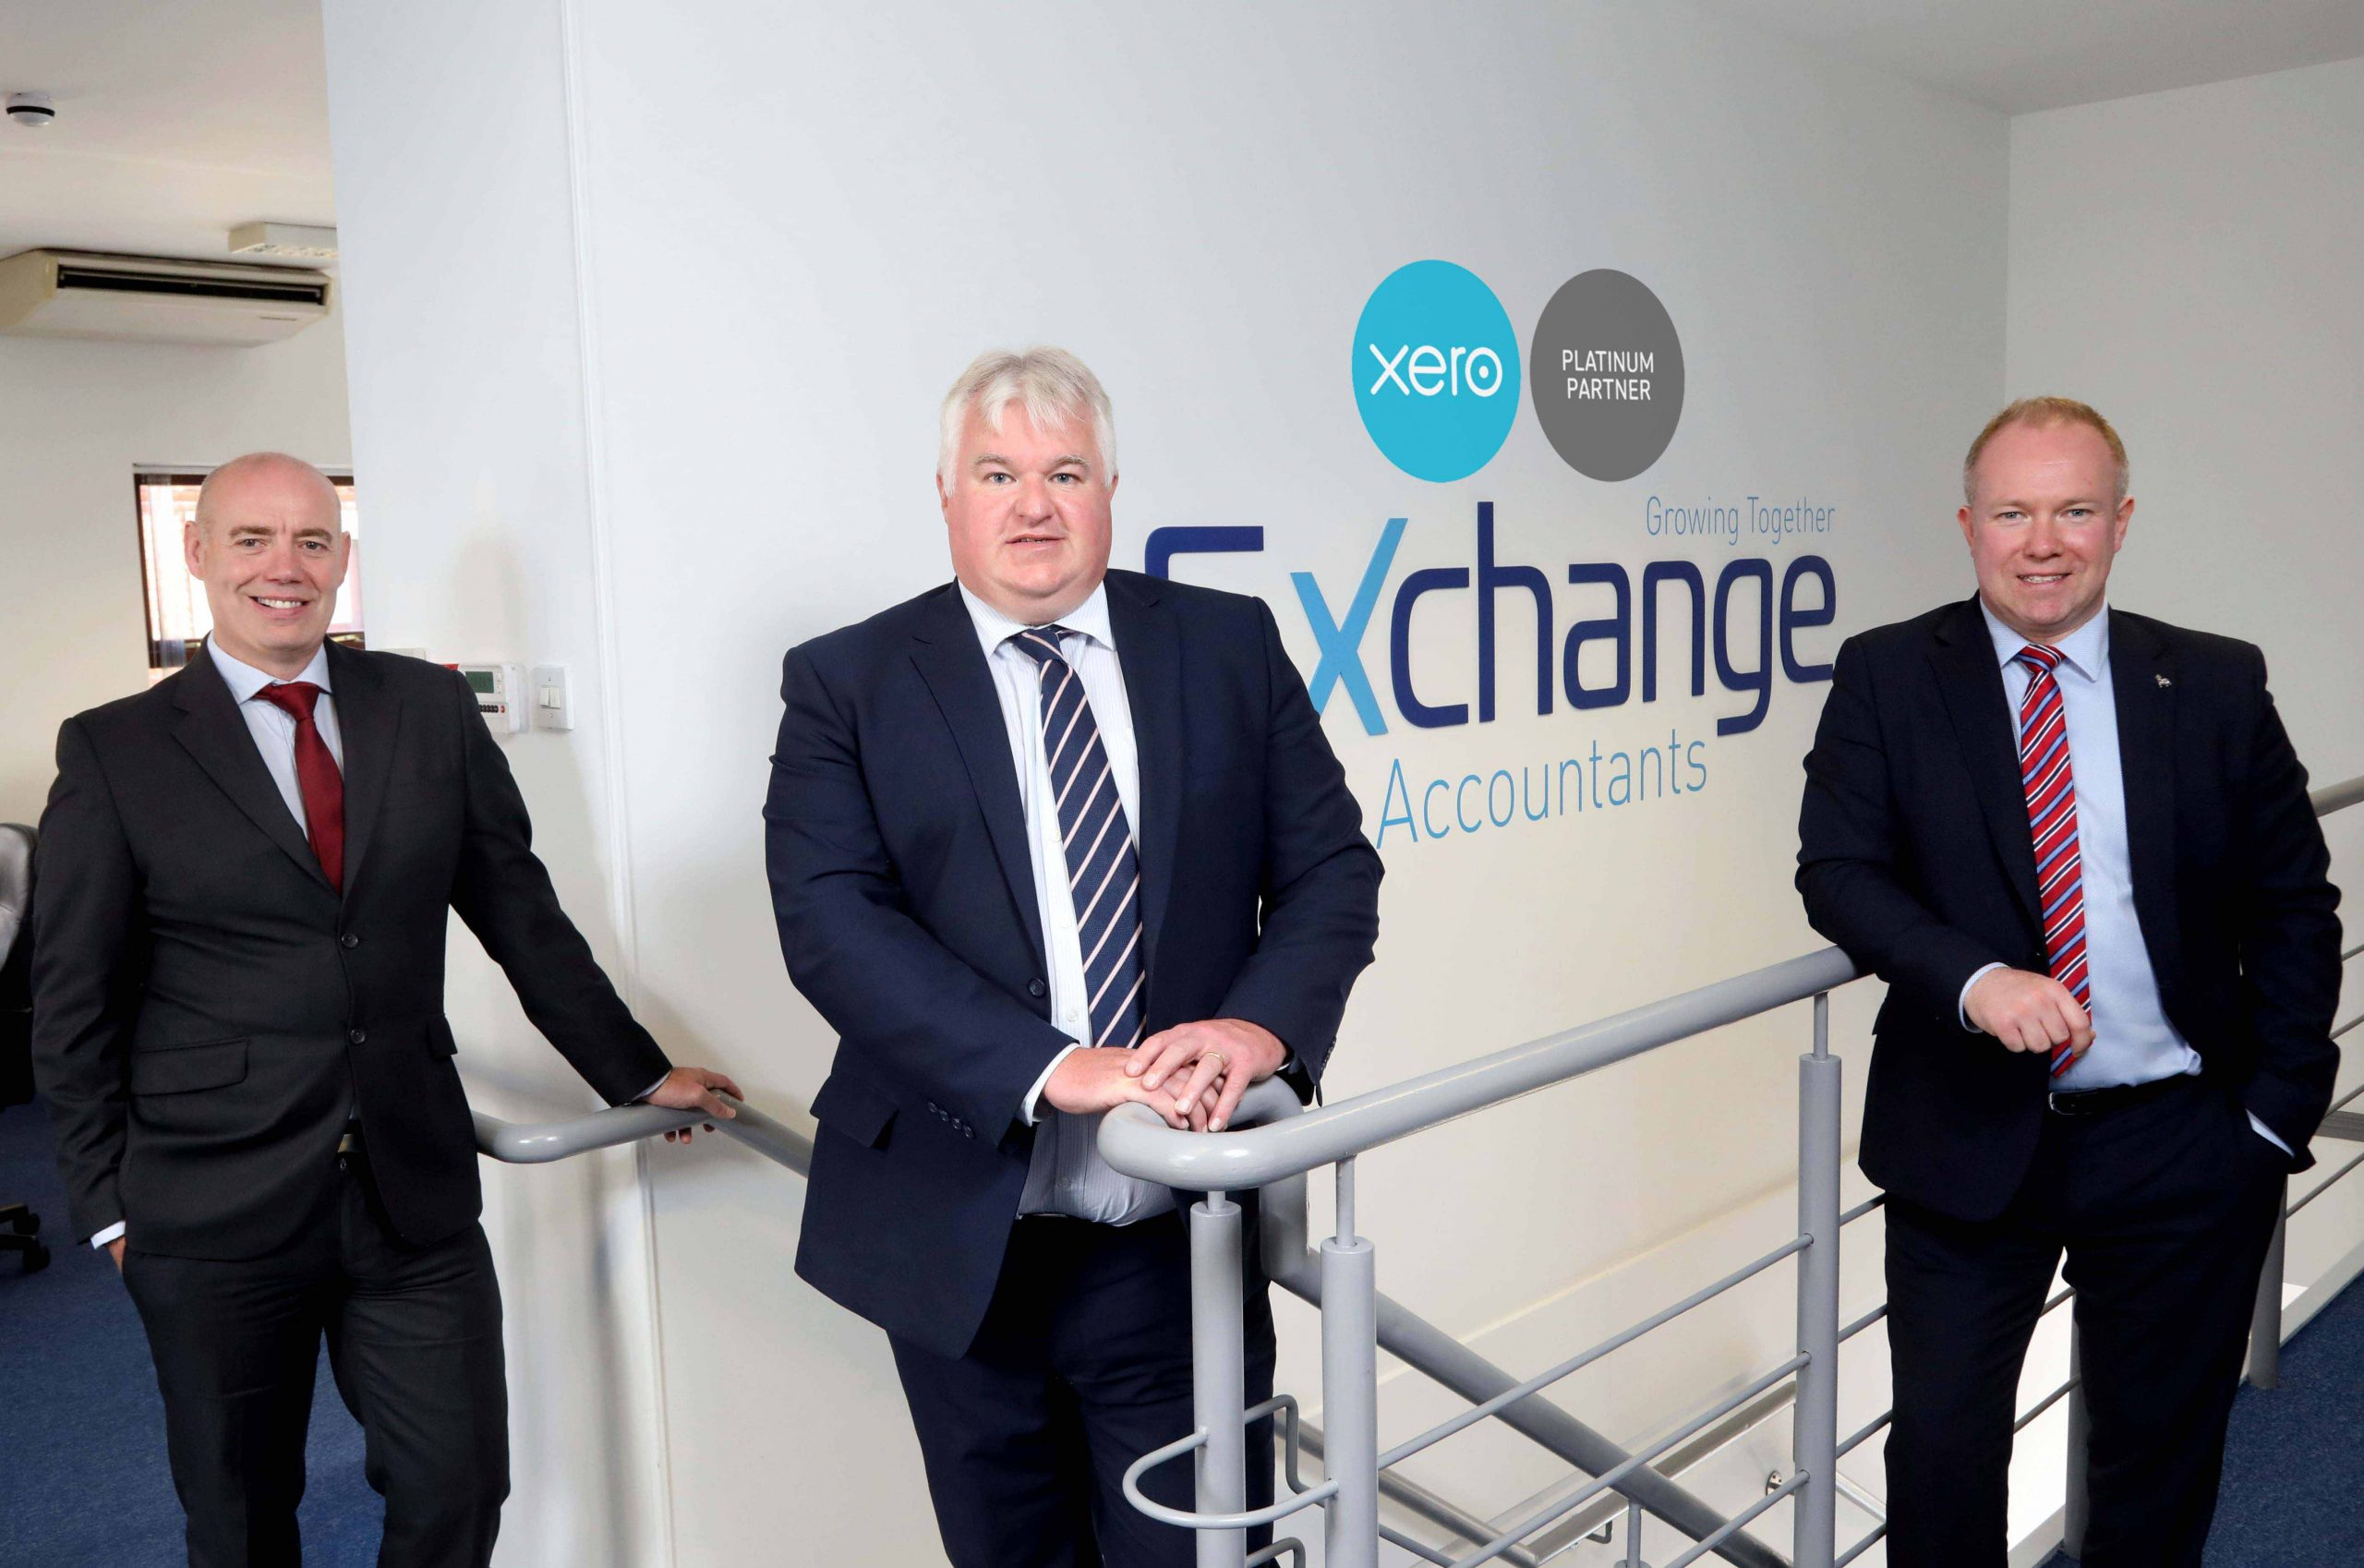 PLAT'S THE WAY TO DO IT: (l-r) Exchange Accountants directors Conor Walls. William Gould and Gary Laverty proudly display the Xero Platinum badge on the office wall after the digital accountancy specialist achieved Platinum Partner status with market-leading cloud accountancy software provider Xero. Lisburn-based Exchange was the first accountancy practice in Northern Ireland to be recognized as a Xero Gold Partner and the company has now been awarded the highest level of partner status, having introduced more than 500 clients to Xero's ground-breaking software system. For more information on Exchange's digital accountancy services, click on www.exchangeaccountants.com, call 028 9263 4135 or send an email to info@exchangeaccountants.com.